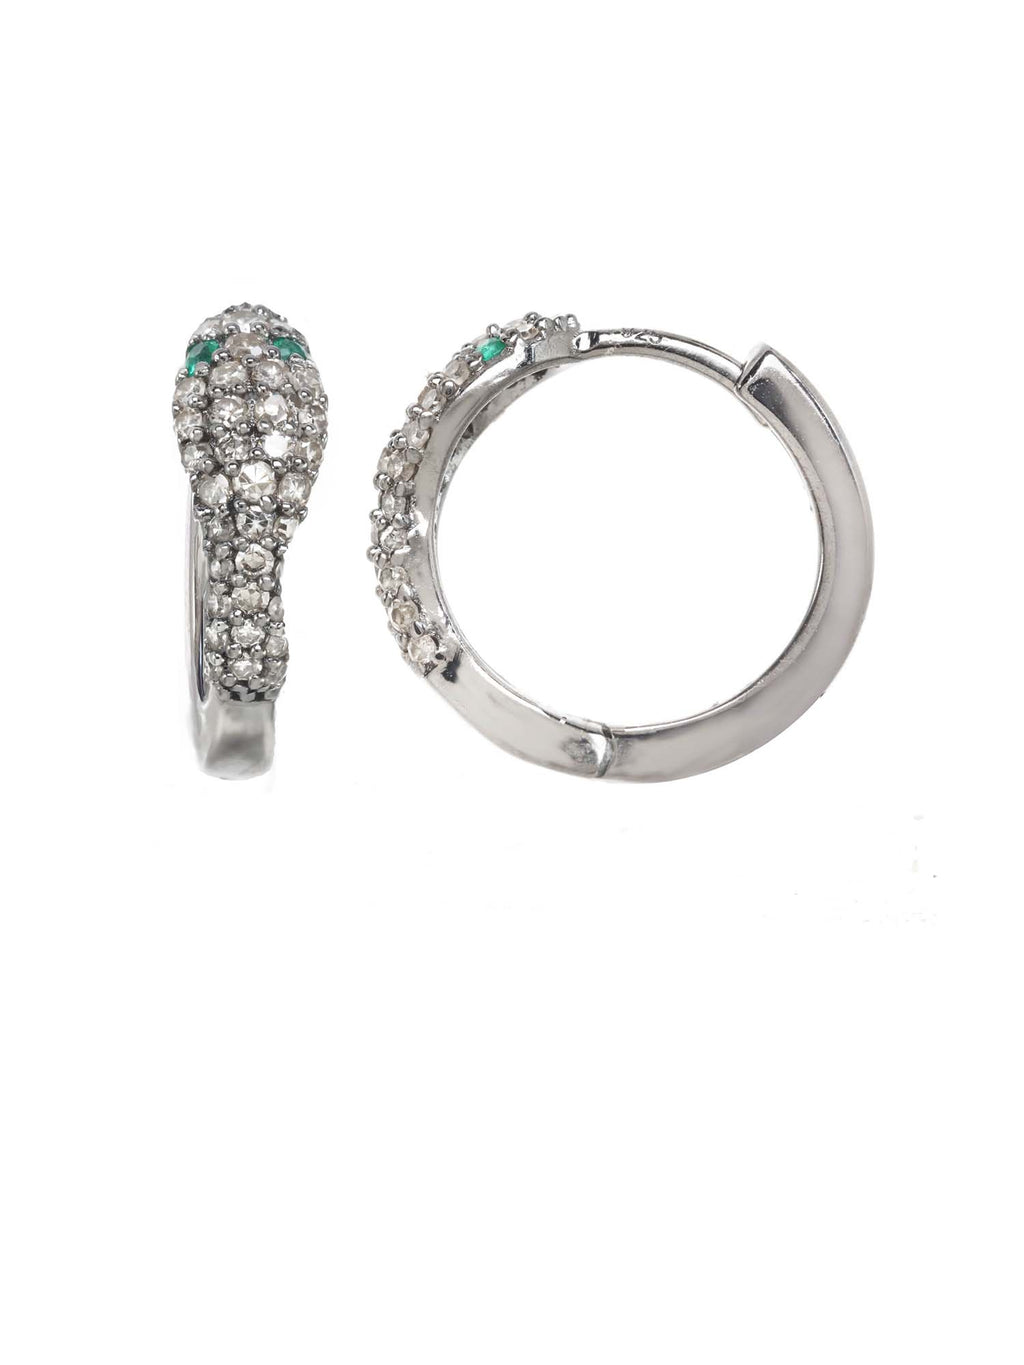 Margo Morrison Diamond and Emerald Snake Huggie Hoop Earrings